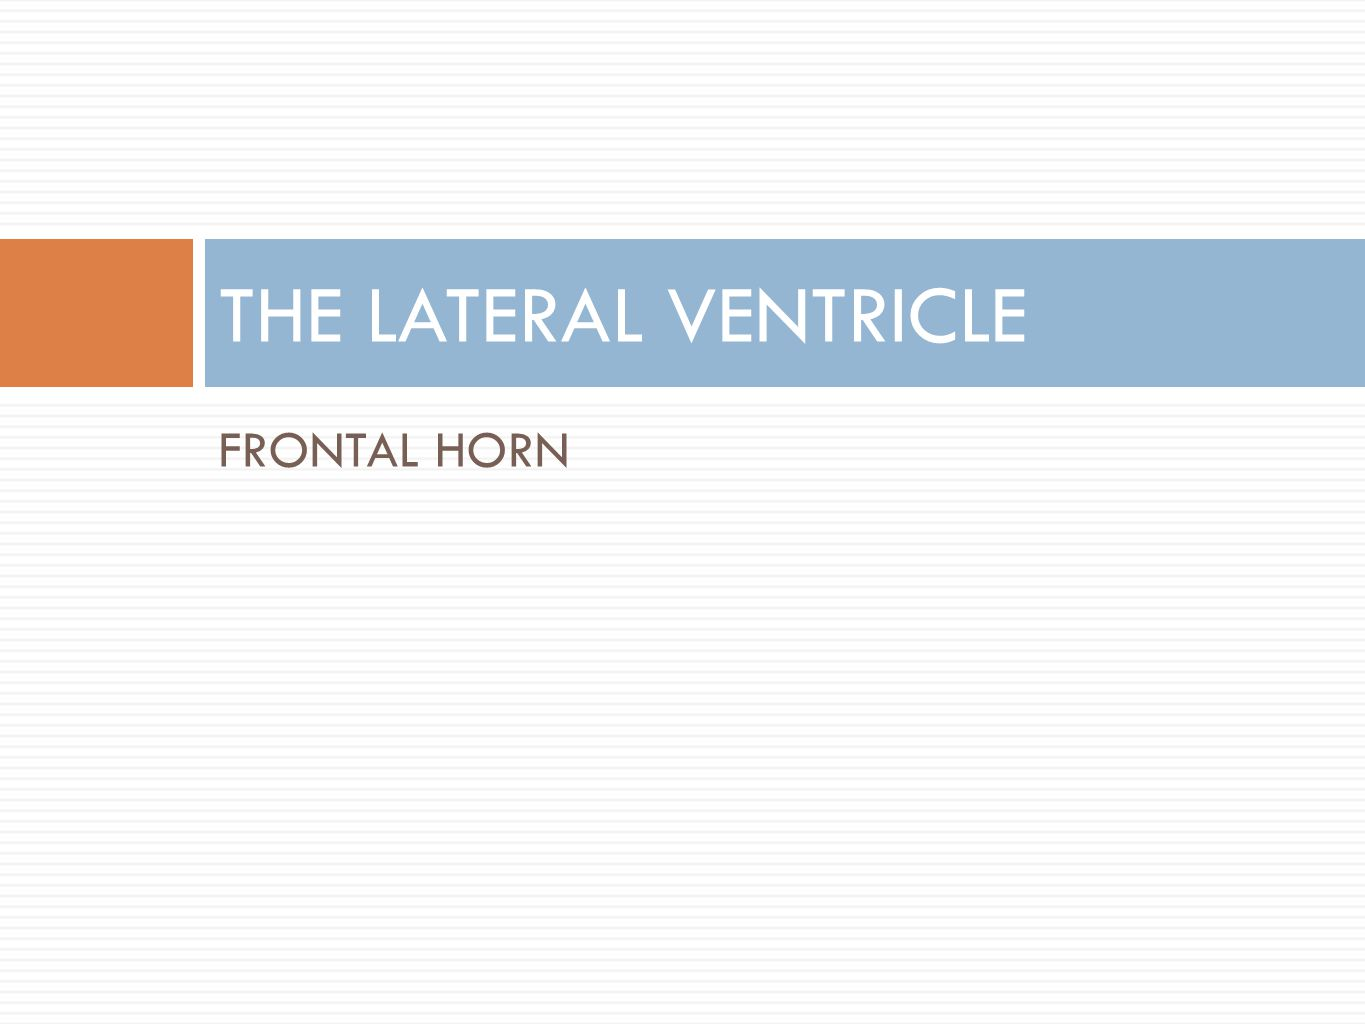 FRONTAL HORN THE LATERAL VENTRICLE